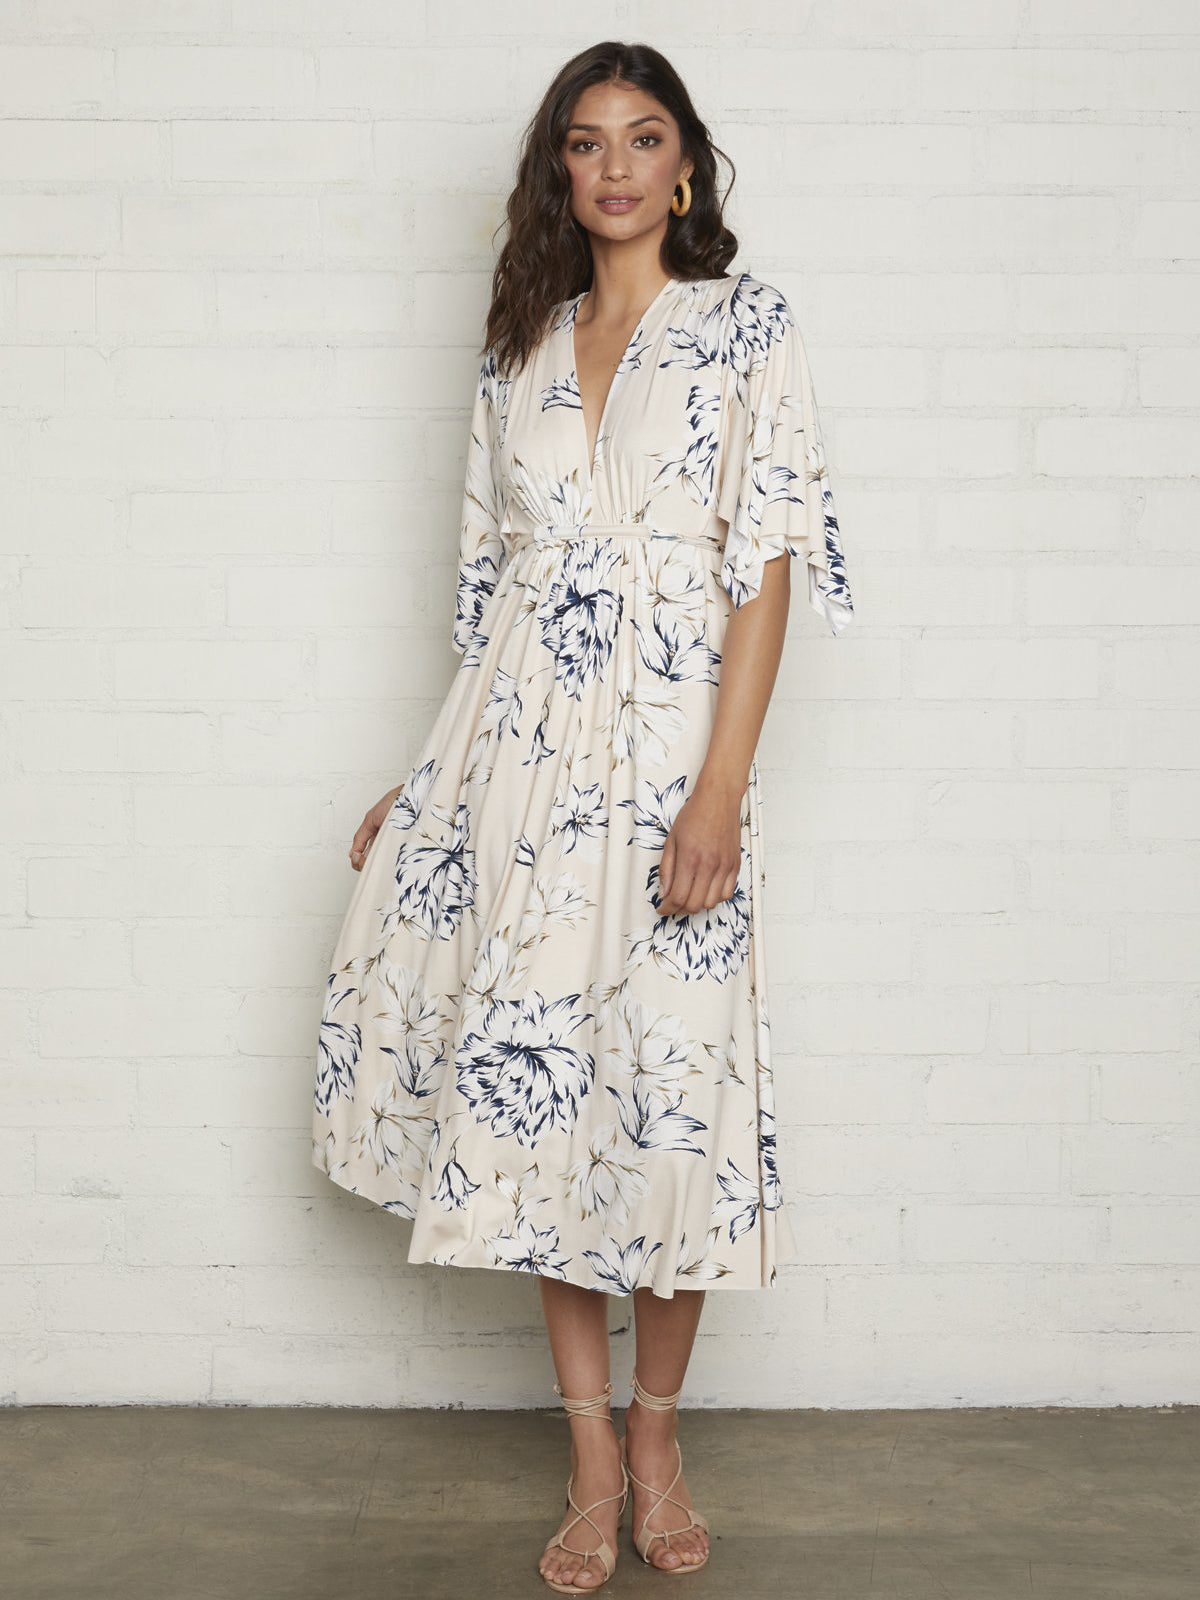 Rachel Pally Mid-Length Caftan Dress - Fleur Print | TILDEN